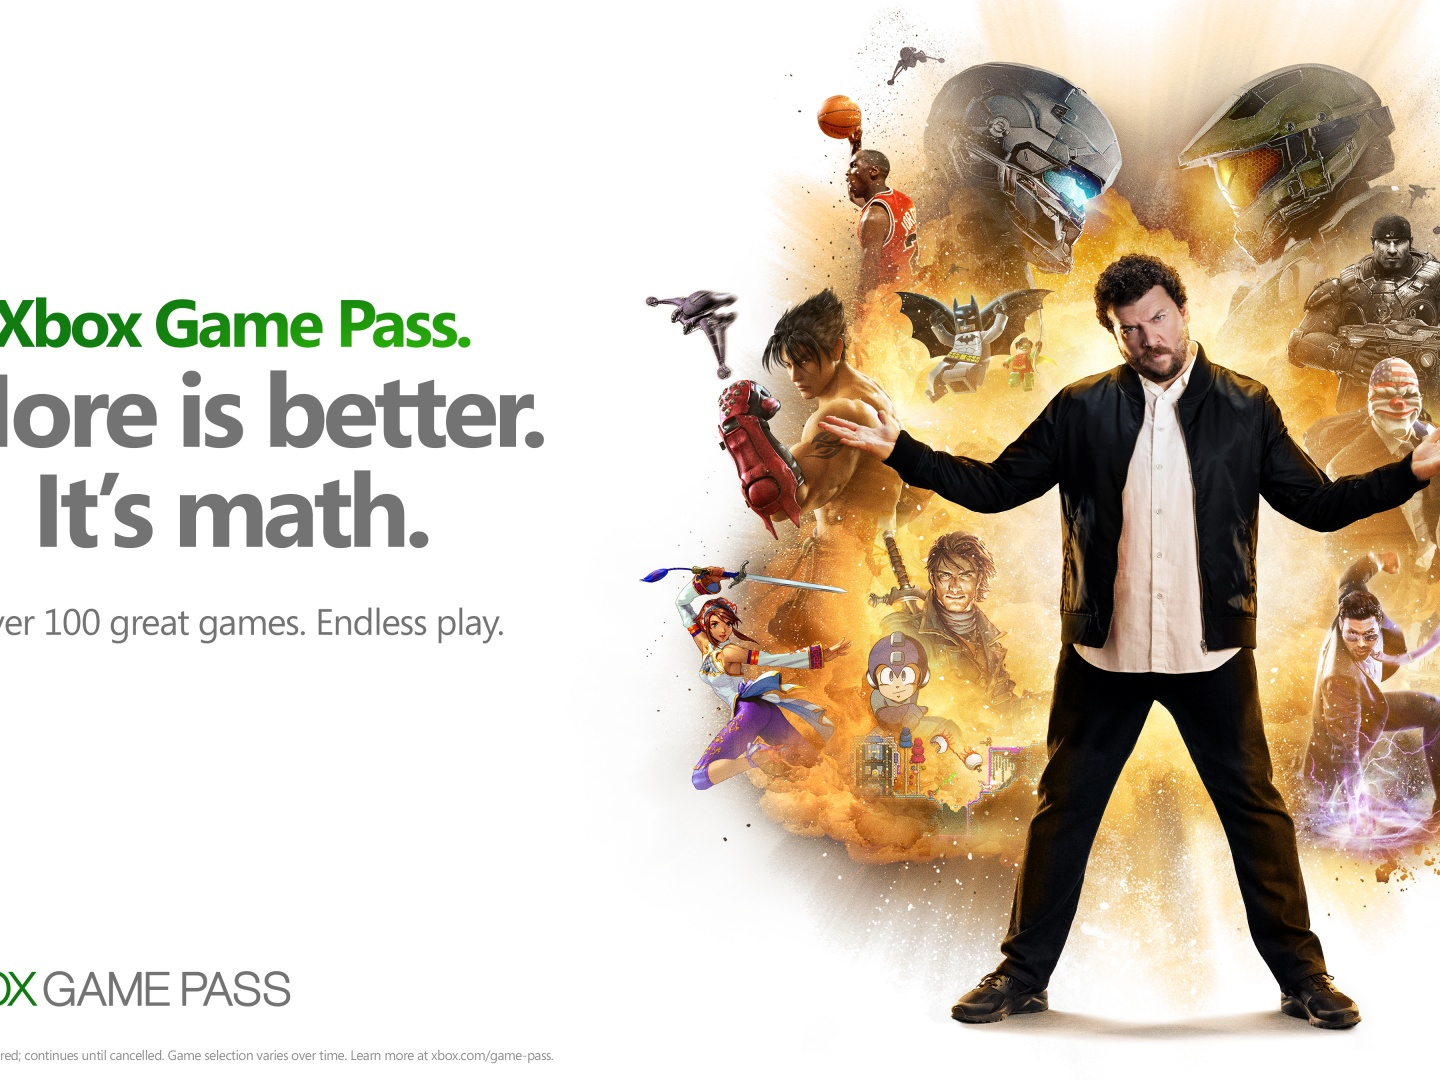 Xbox Game Pass Launch Campaign Thumbnail